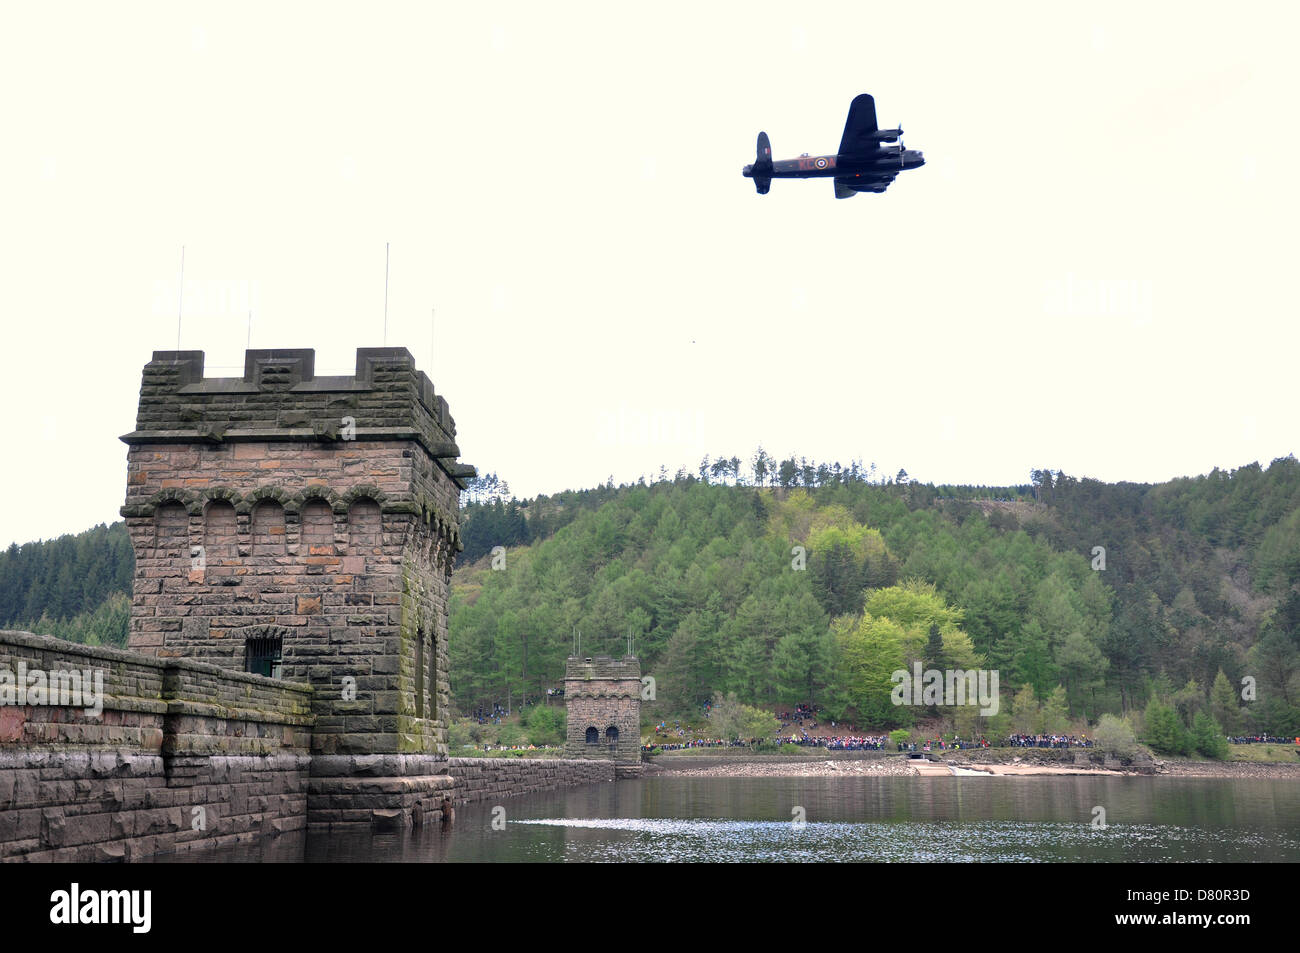 Derwent, Derbyshire, UK. 16th May 2013. A Lancaster bomber of the RAF's 617 Squandron, fly's over Derwent - Stock Image